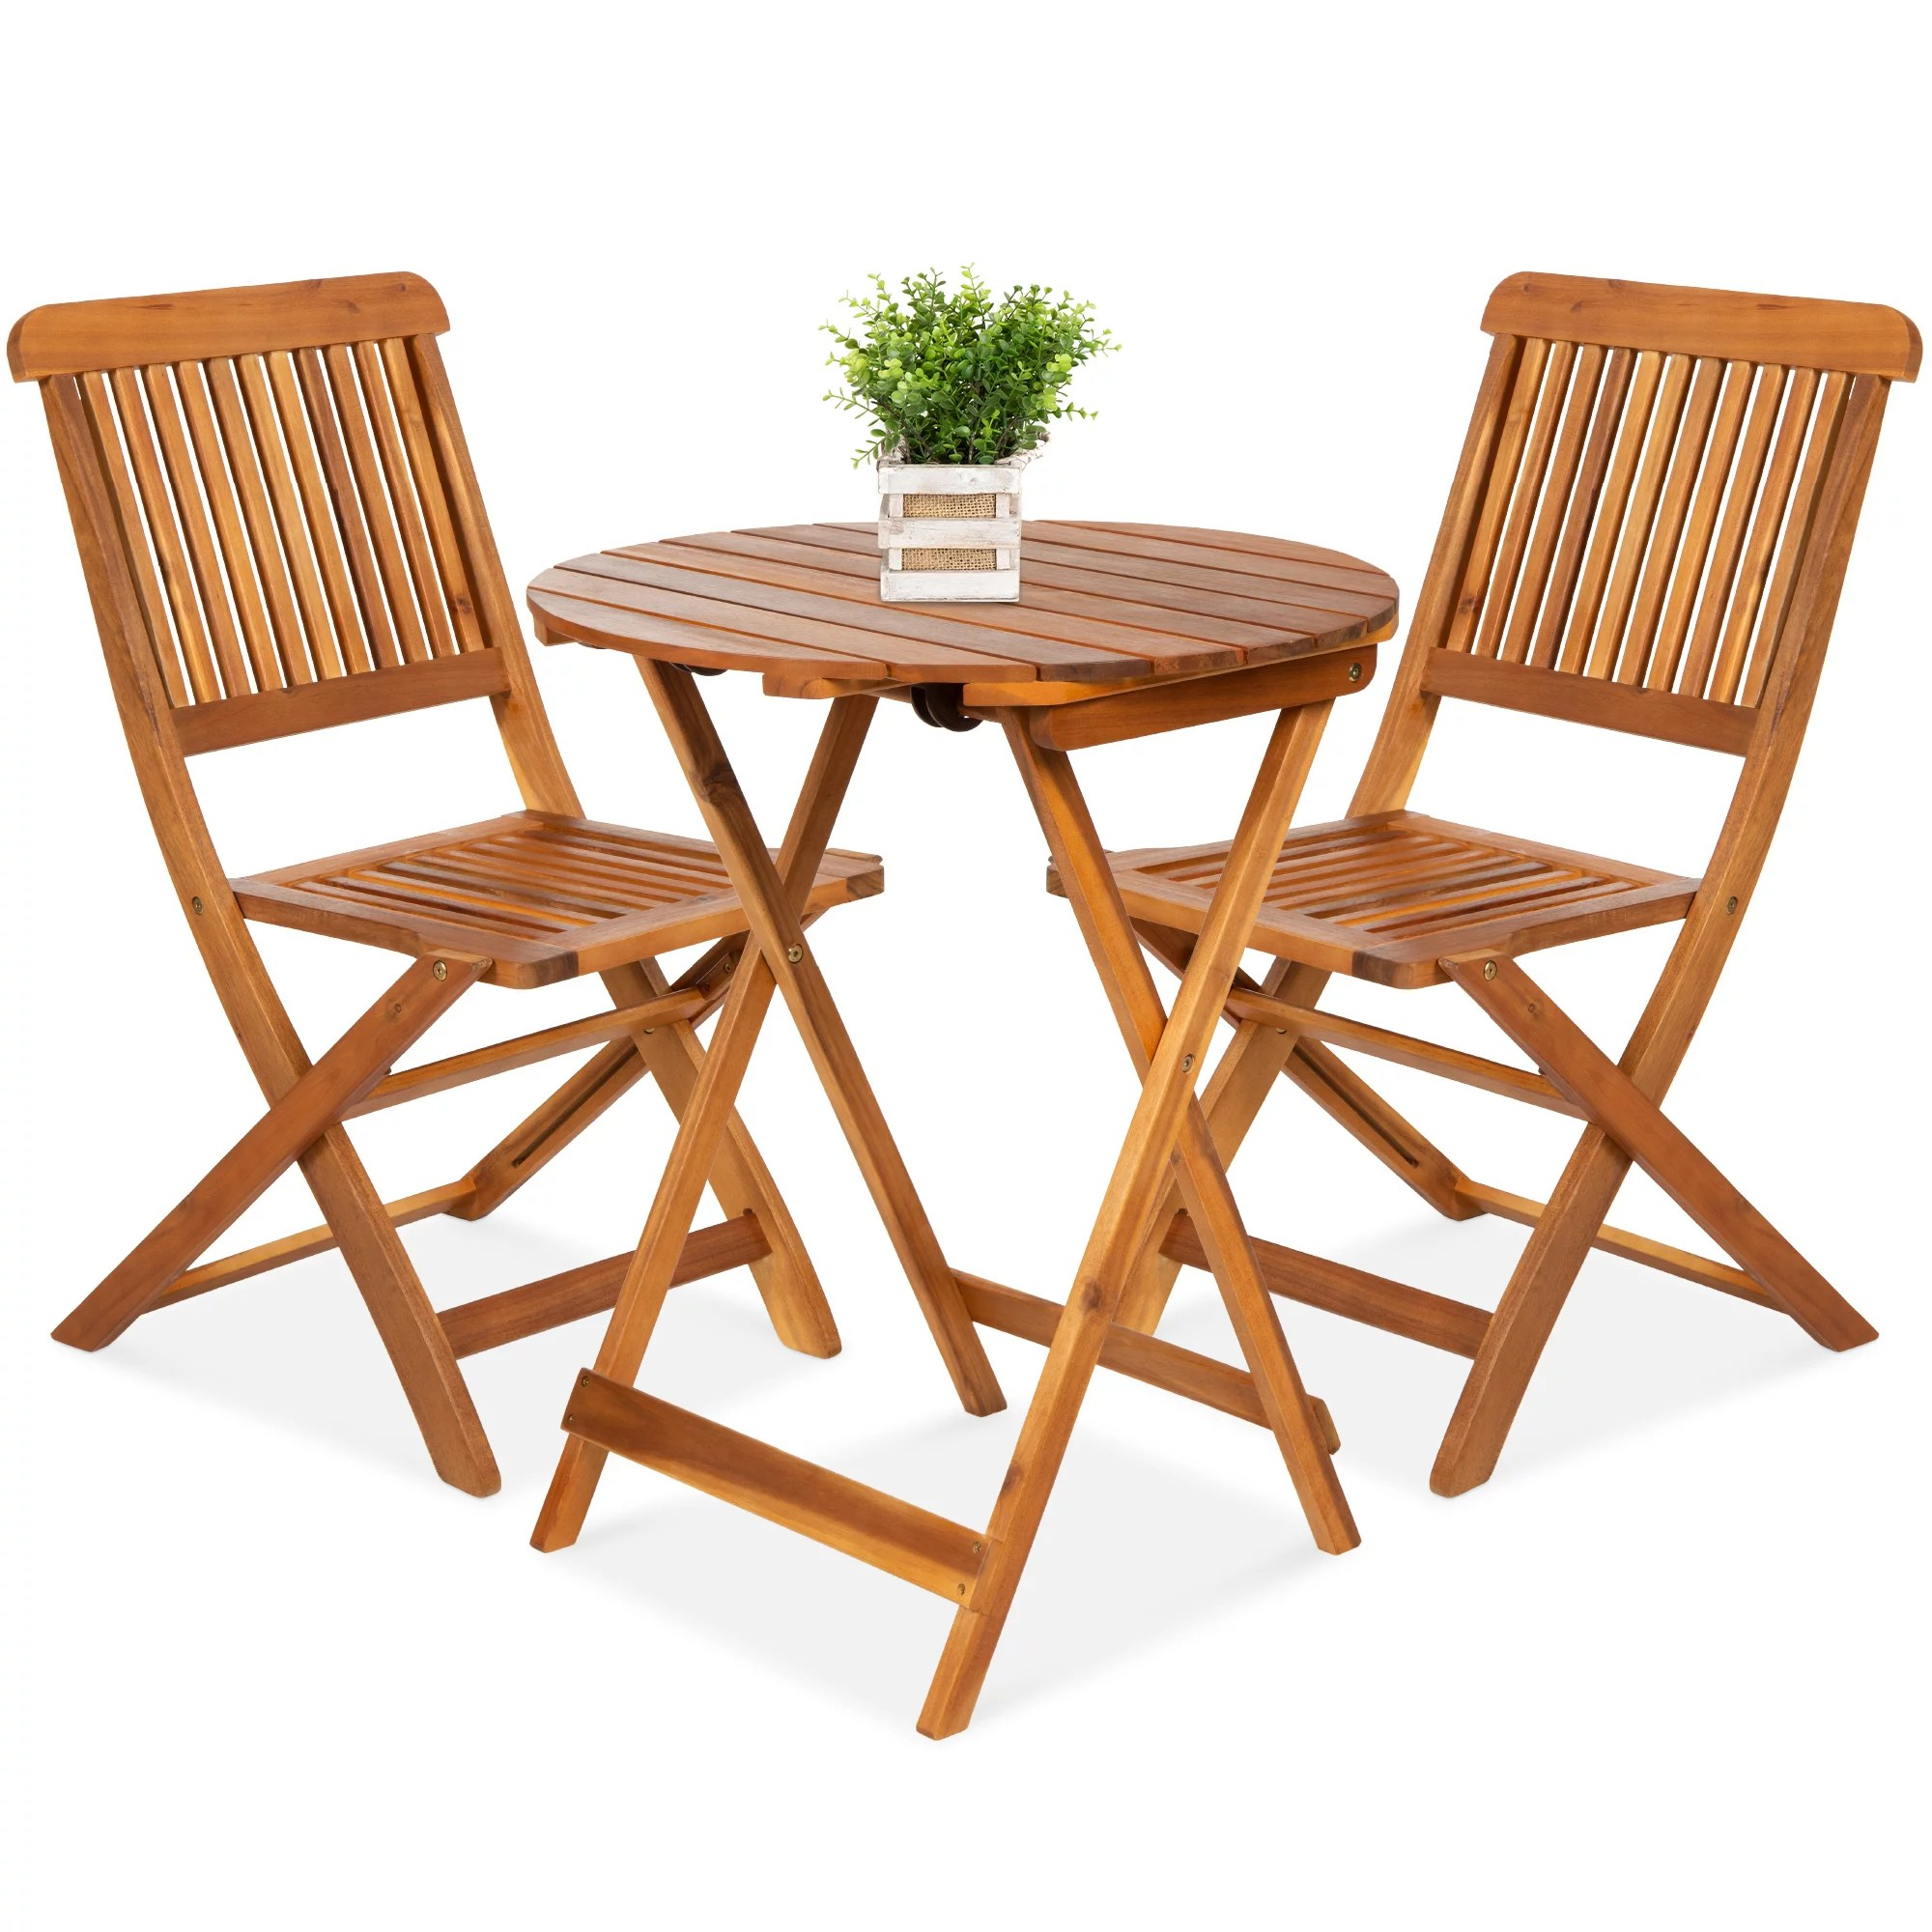 best choice products 3 piece acacia wood bistro set folding patio furniture w 2 chairs table teak finish natural walmart com